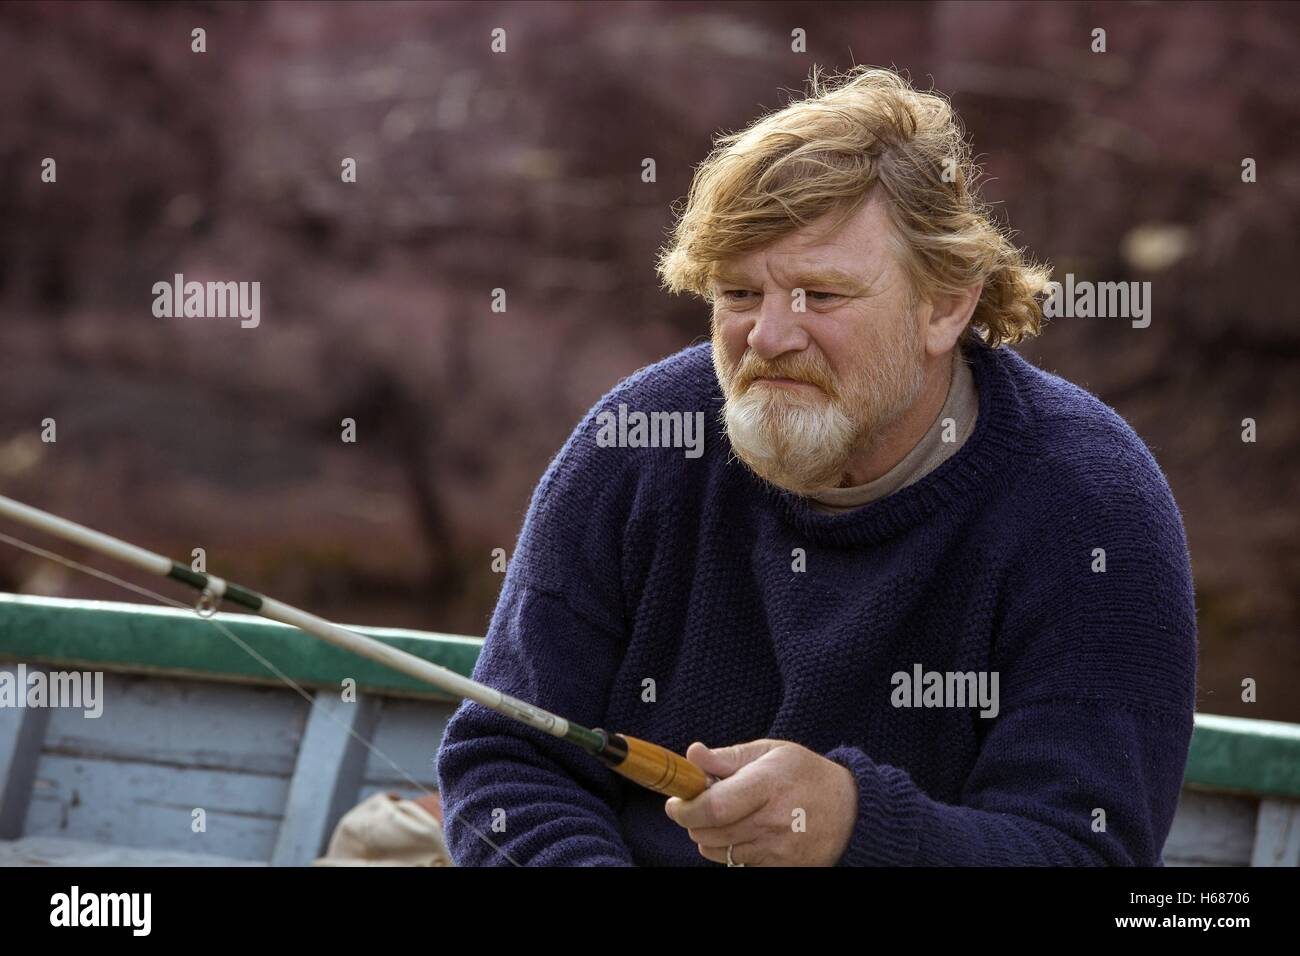 BRENDAN GLEESON THE GRAND SEDUCTION (2013) - Stock Image